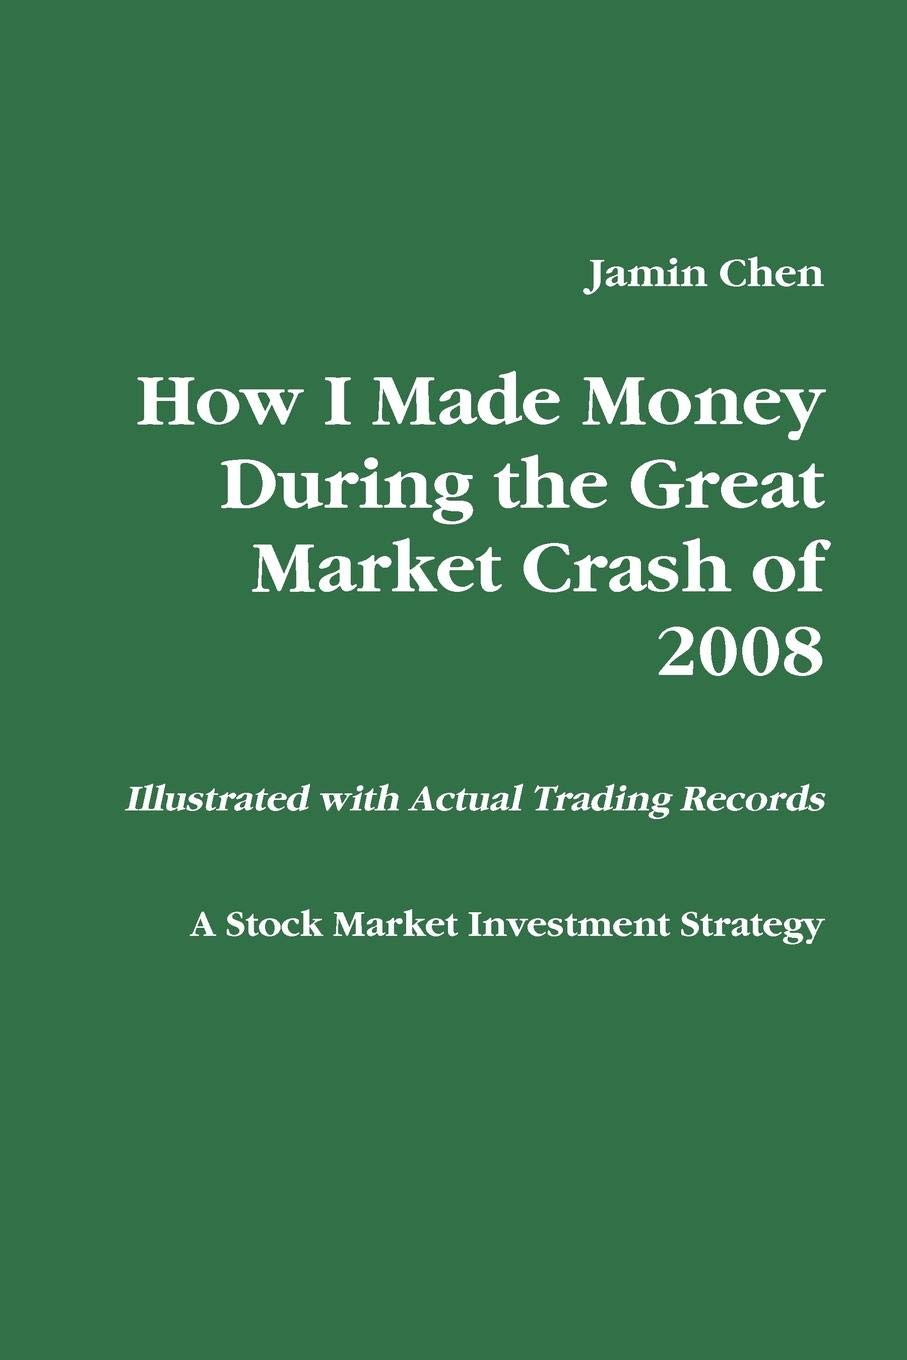 How I Made Money During the Great Market Crash of 2008